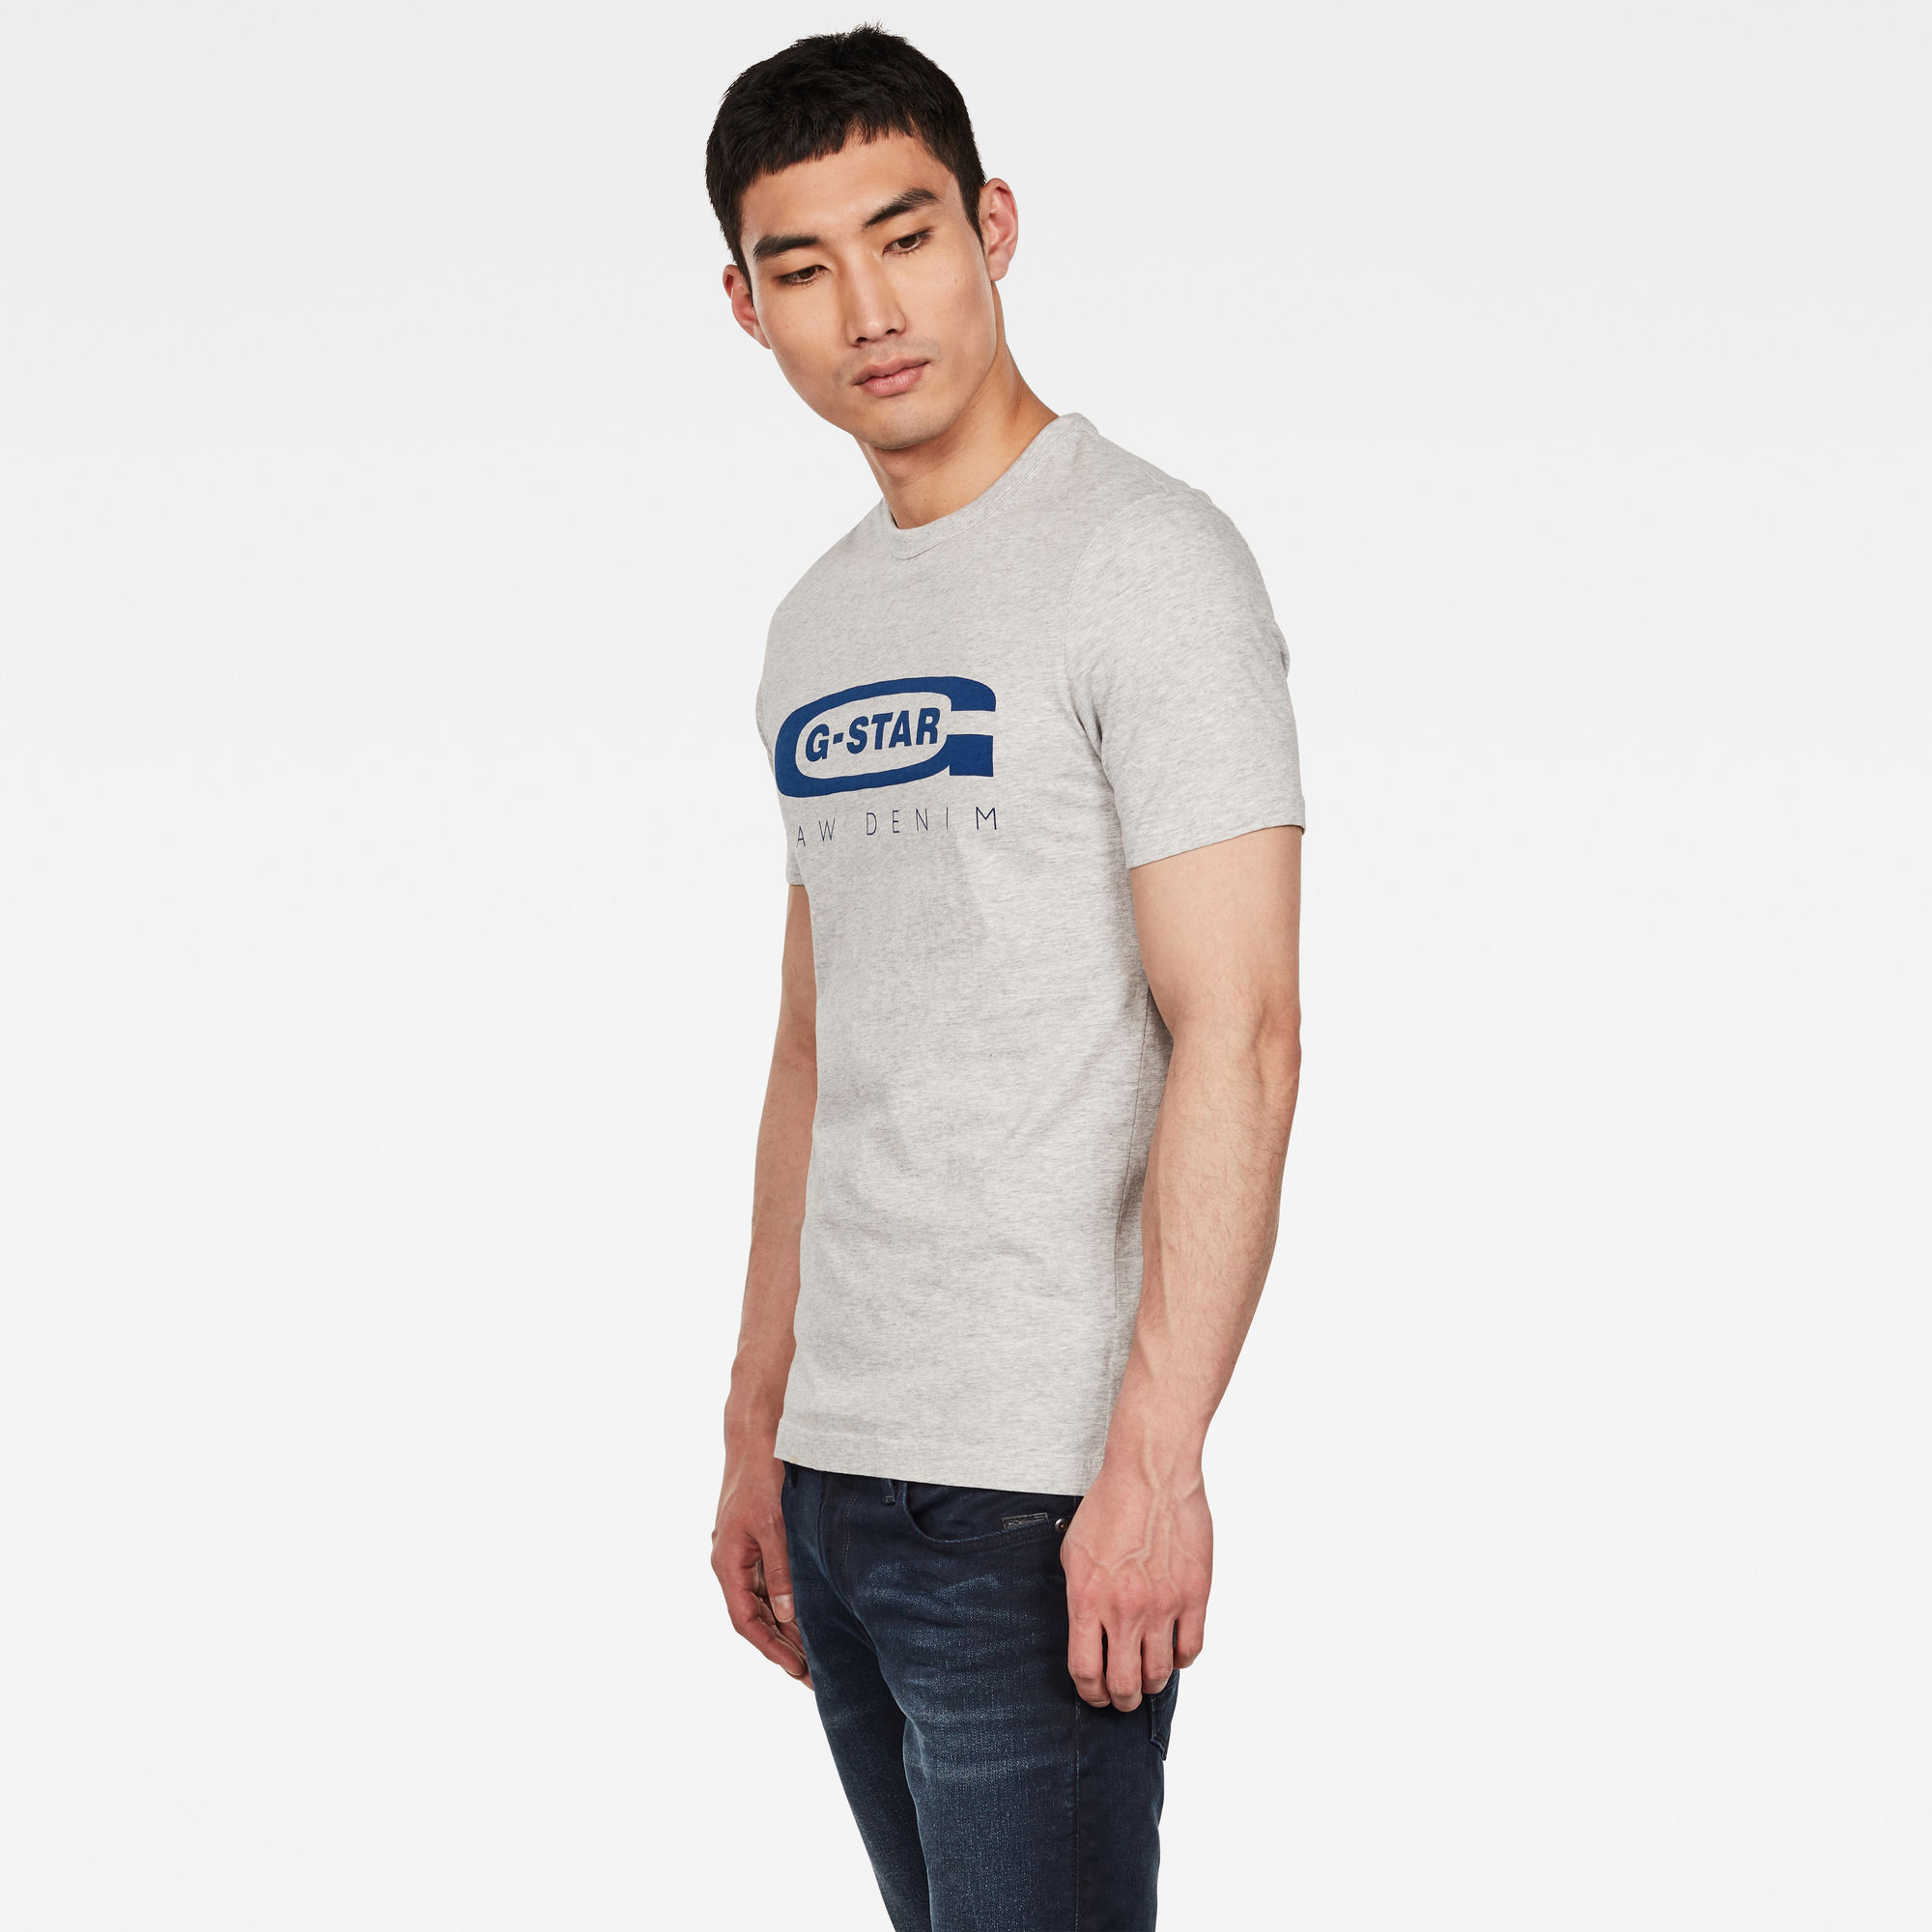 G-Star RAW Graphic Logo 4 T-Shirt